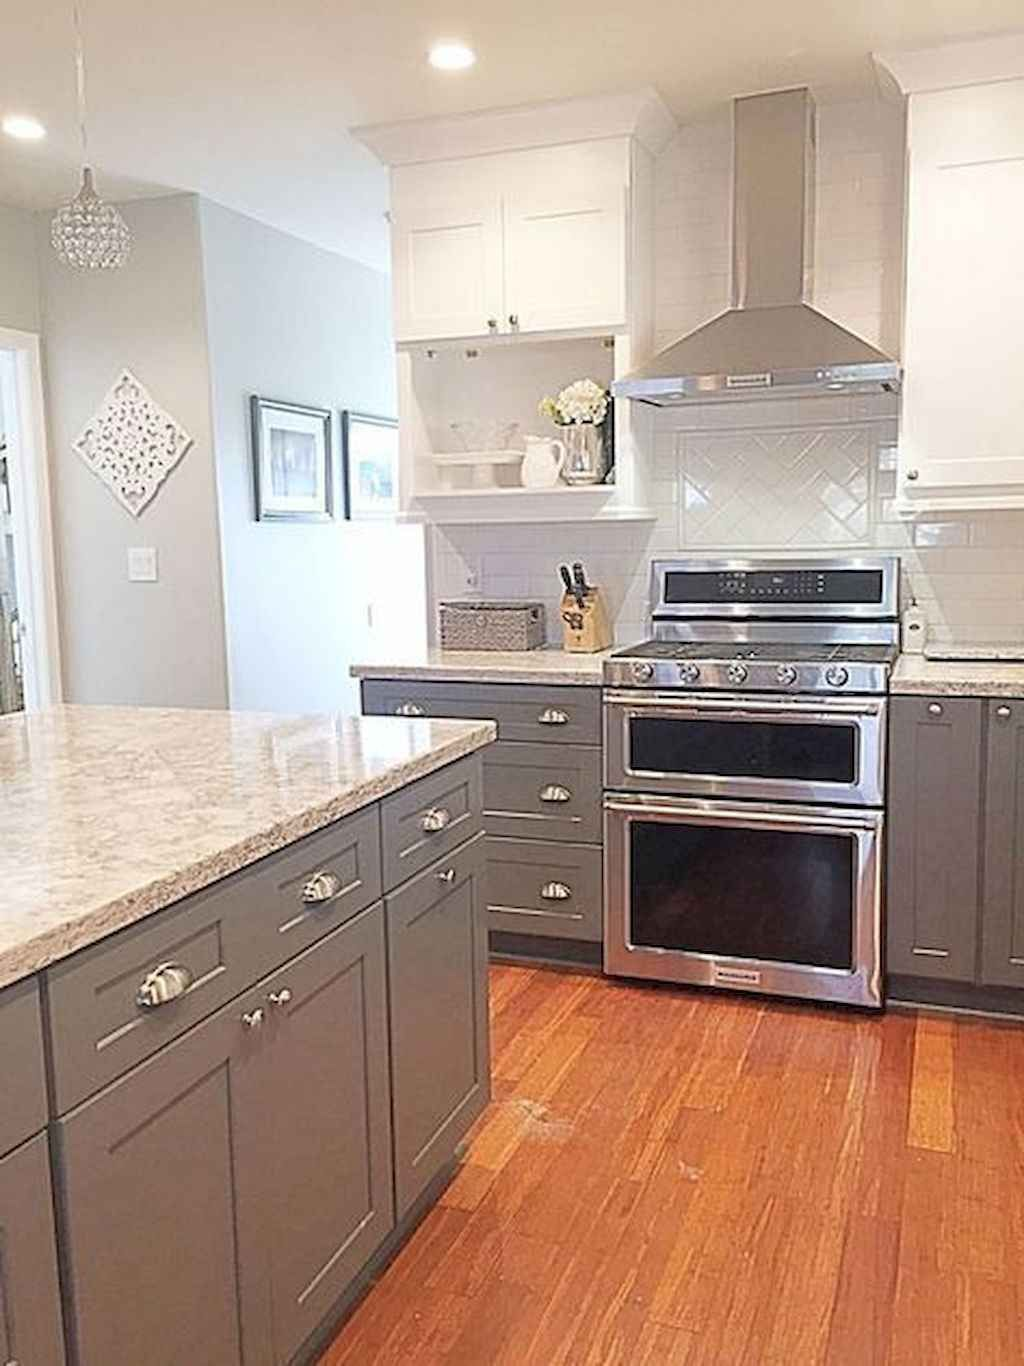 Cabinet Cabinetmakeovertwotone Cabinets Gorge Gorgeous Gray Homespecially Ideas Kitchen Ma Kitchen Cabinets Decor New Kitchen Cabinets Kitchen Design